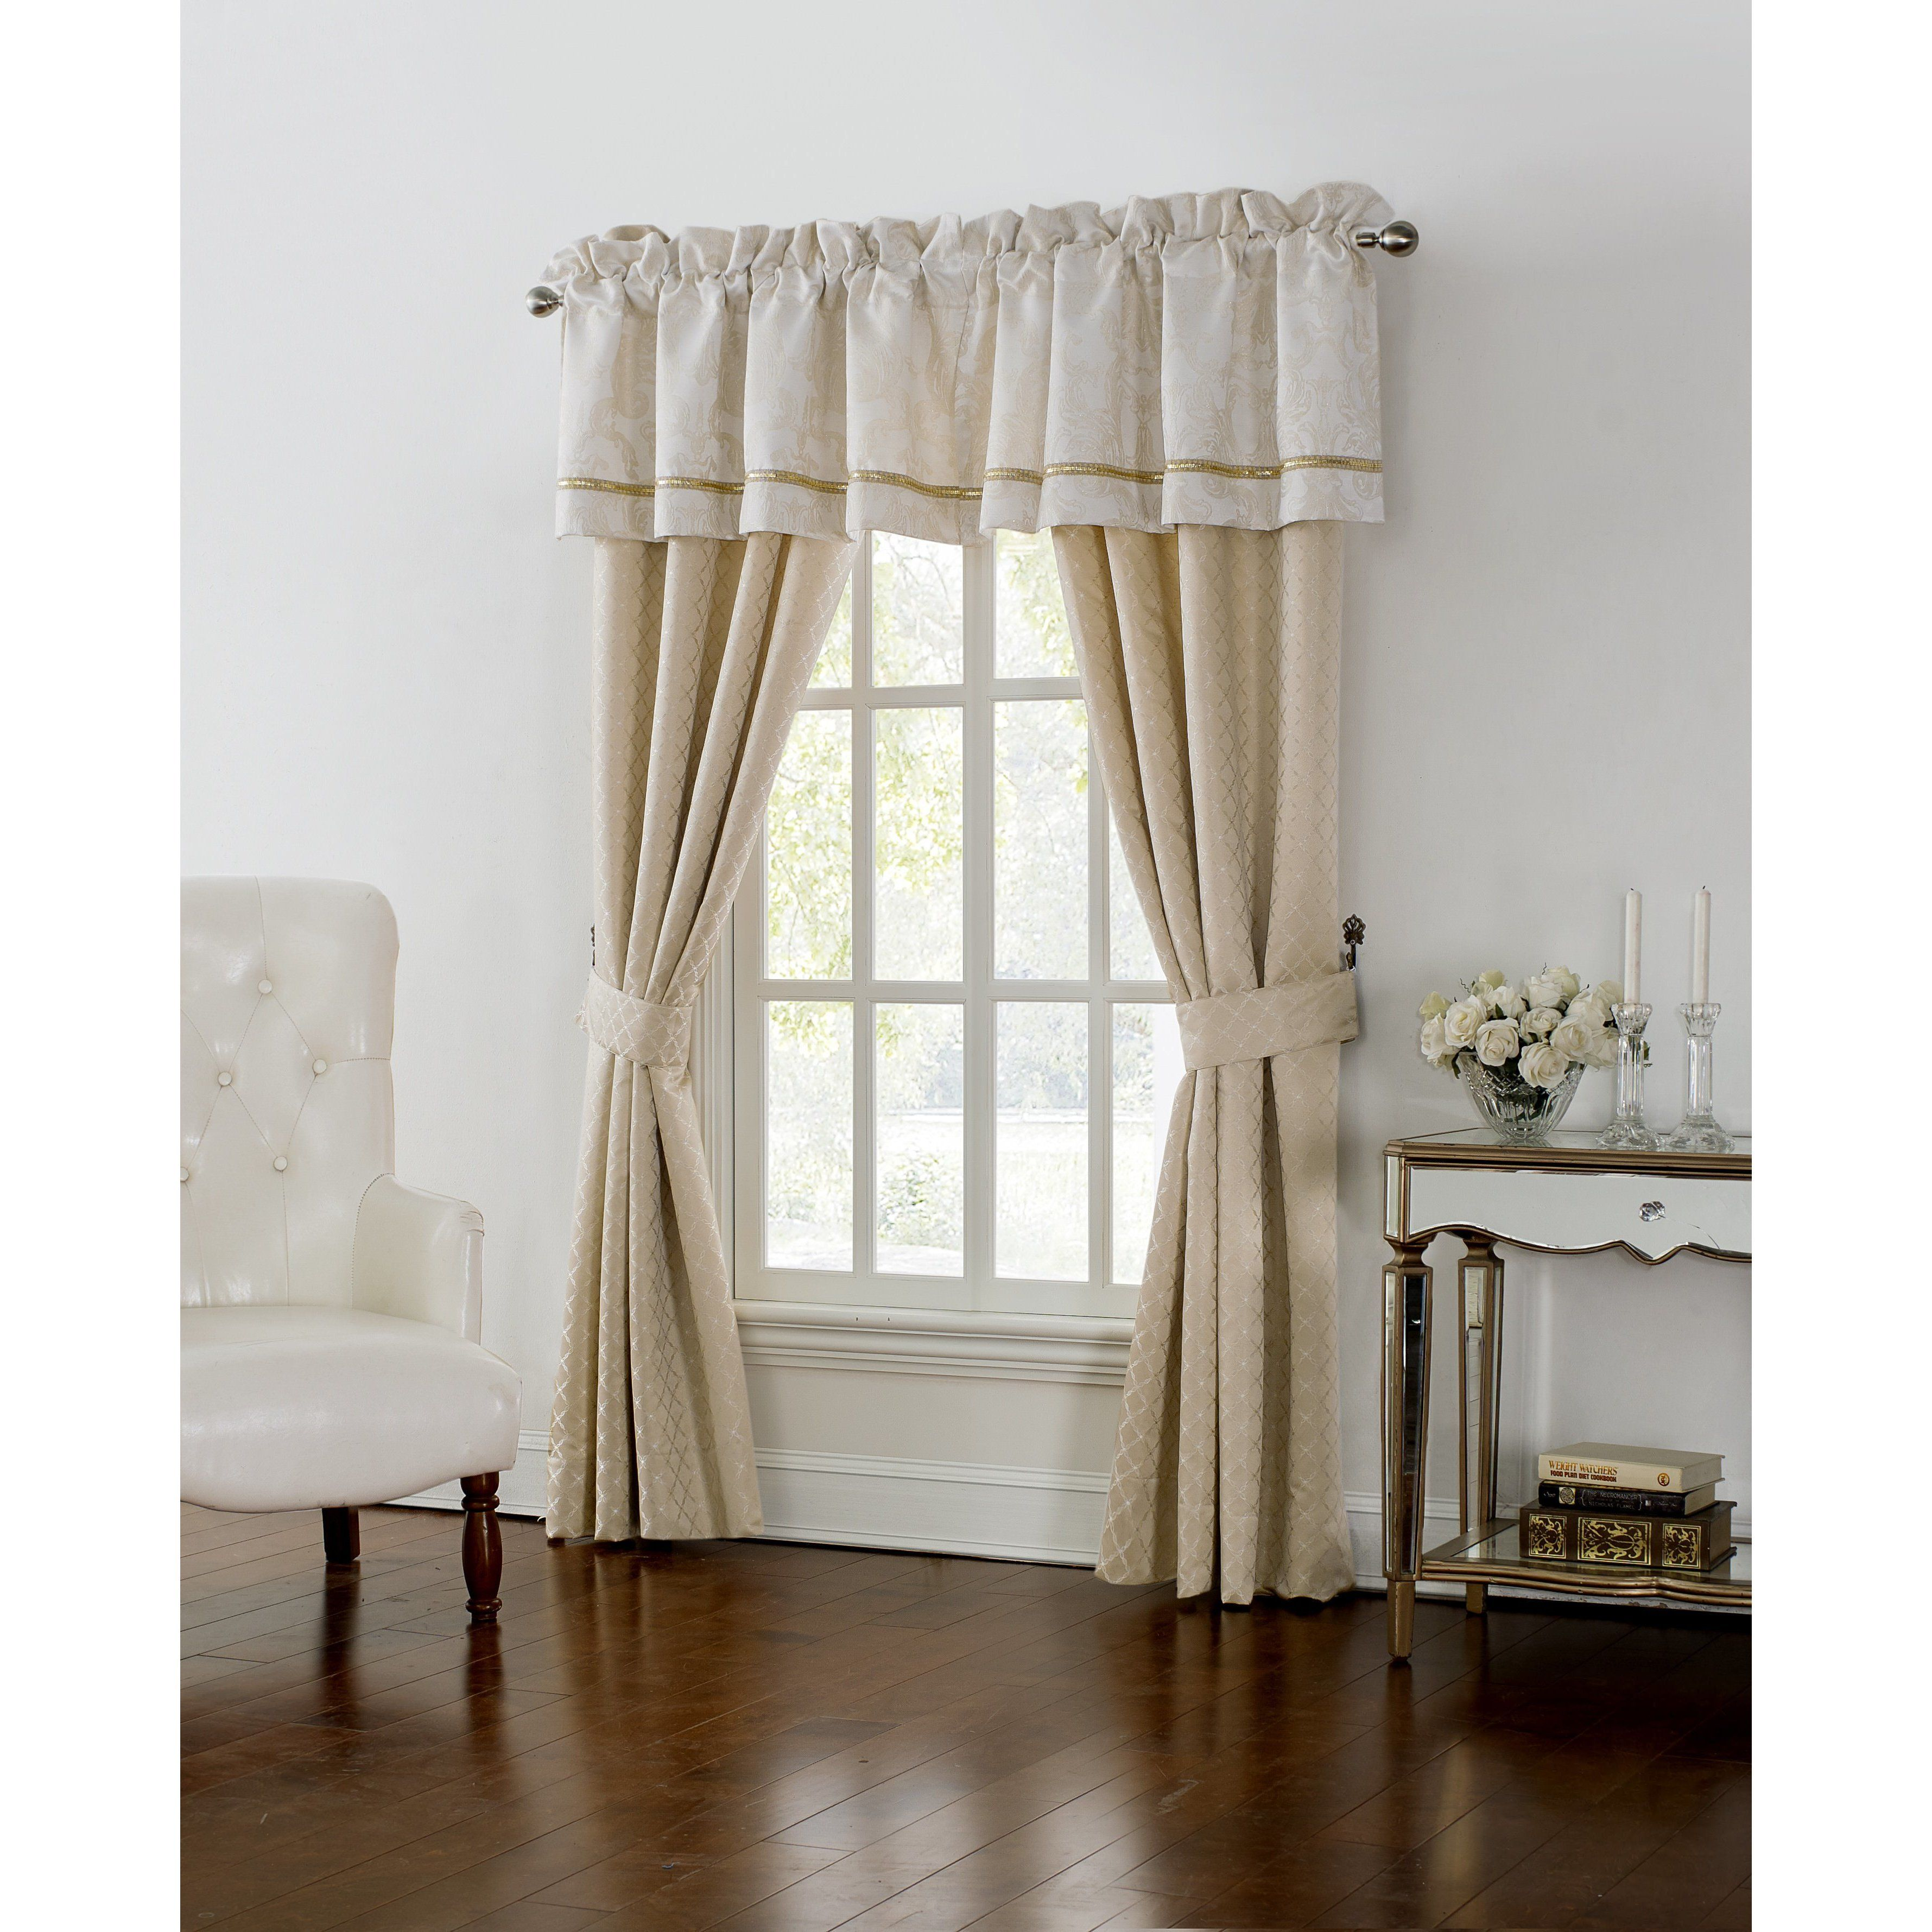 Curtain Flower Decor Tulle Door Window Curtain Drape Panel Sheer Scarf Valances Modern Bedroom Living Room Curtains Cortinas To Assure Years Of Trouble-Free Service Home Décor